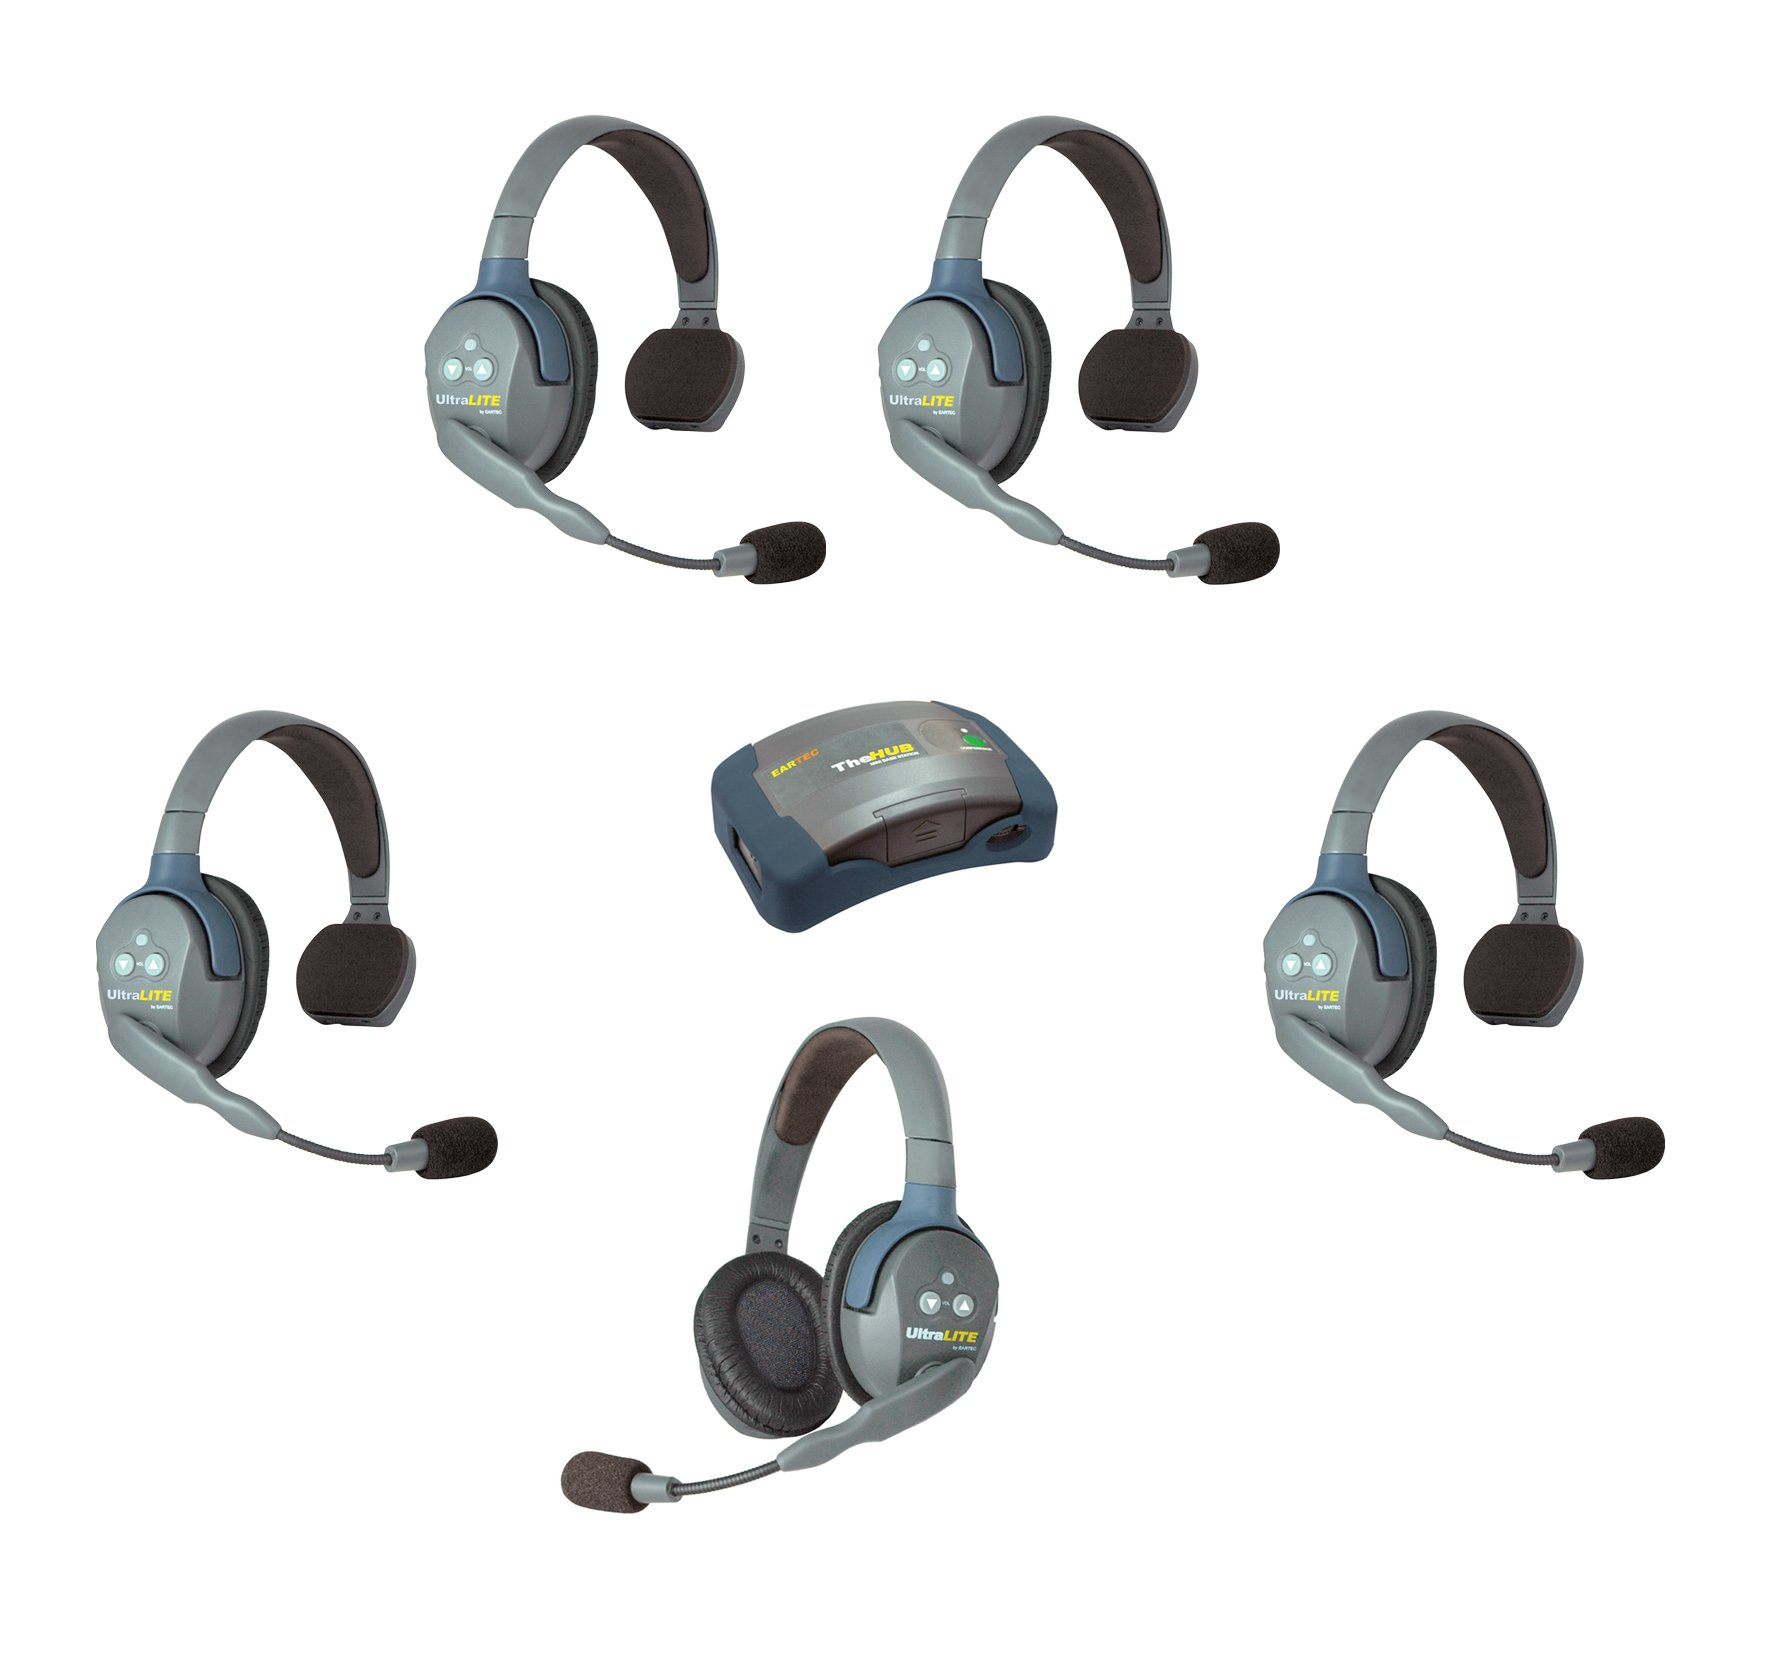 Eartec HUB541 - 5 Person System with 4 Single, 1 Double Wireless Communication Headsets and 1 HUB Mini Base Transceiver by Eartec